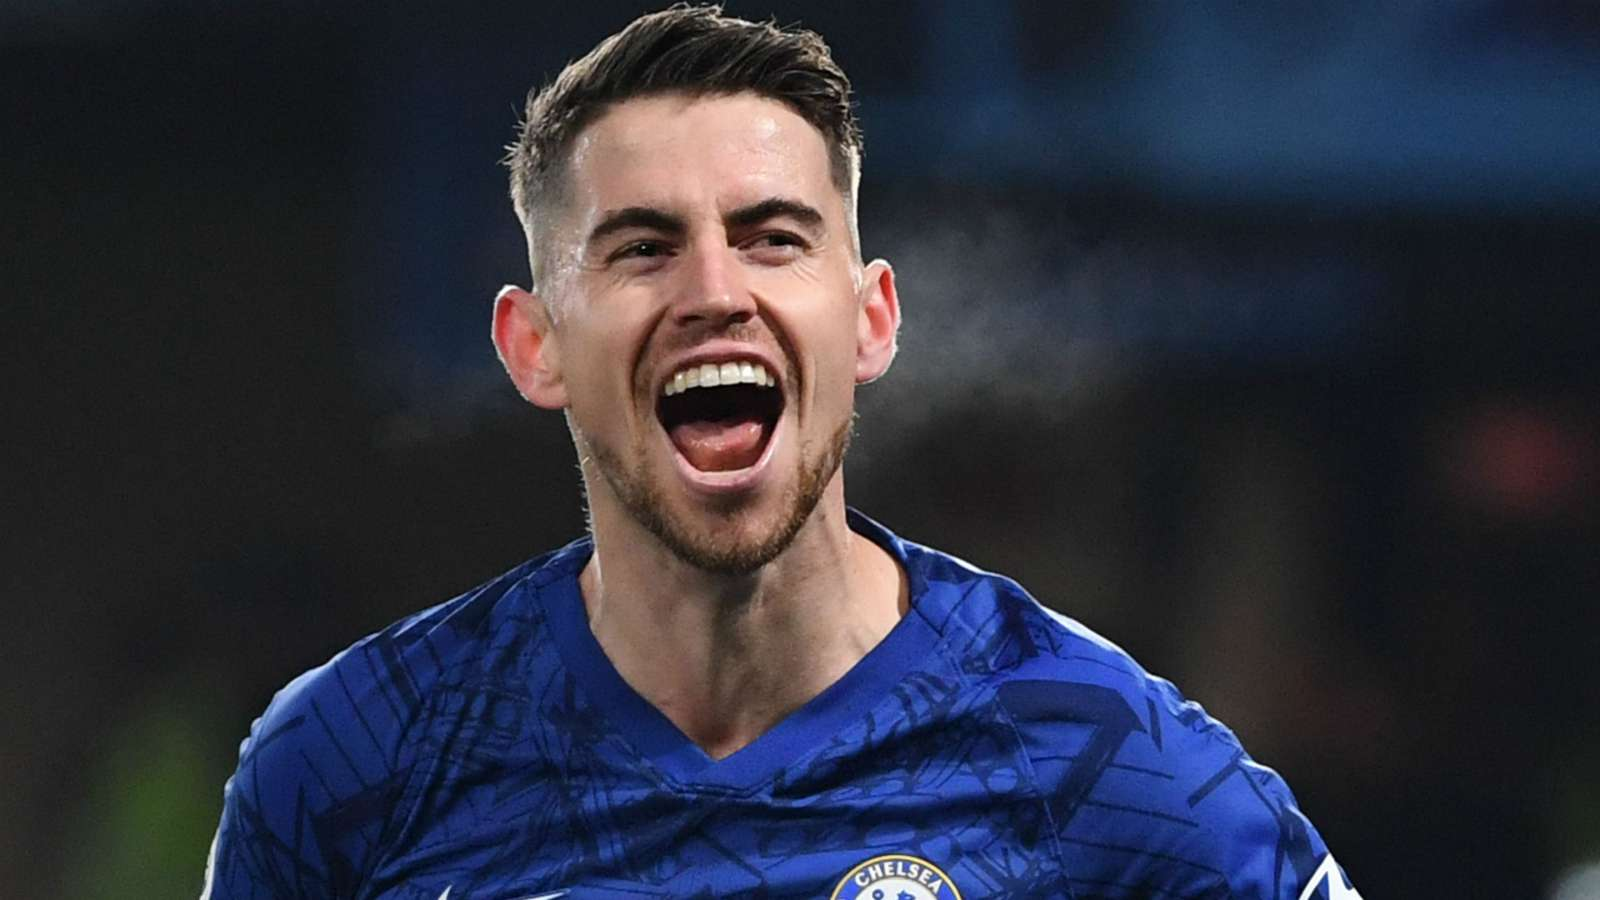 'If an important team calls, why not?' – Jorginho's agent hints at Juventus transfer